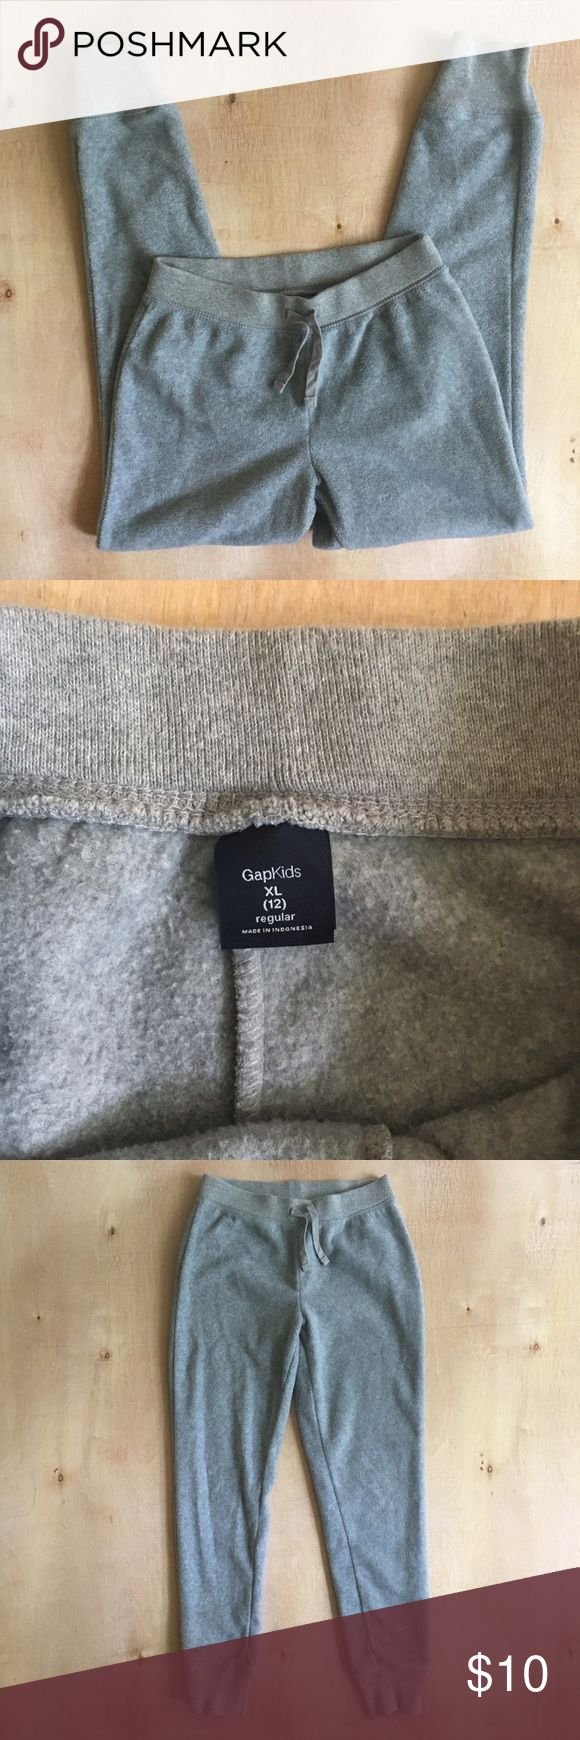 Gap Kids Fleece Joggers Gap Kids girls' size XL (12) gray fleece jogger sweatpants in excellent used condition! Very soft. No external pilling. No stains or holes. Bundle for additional discount! GAP Bottoms Sweatpants & Joggers